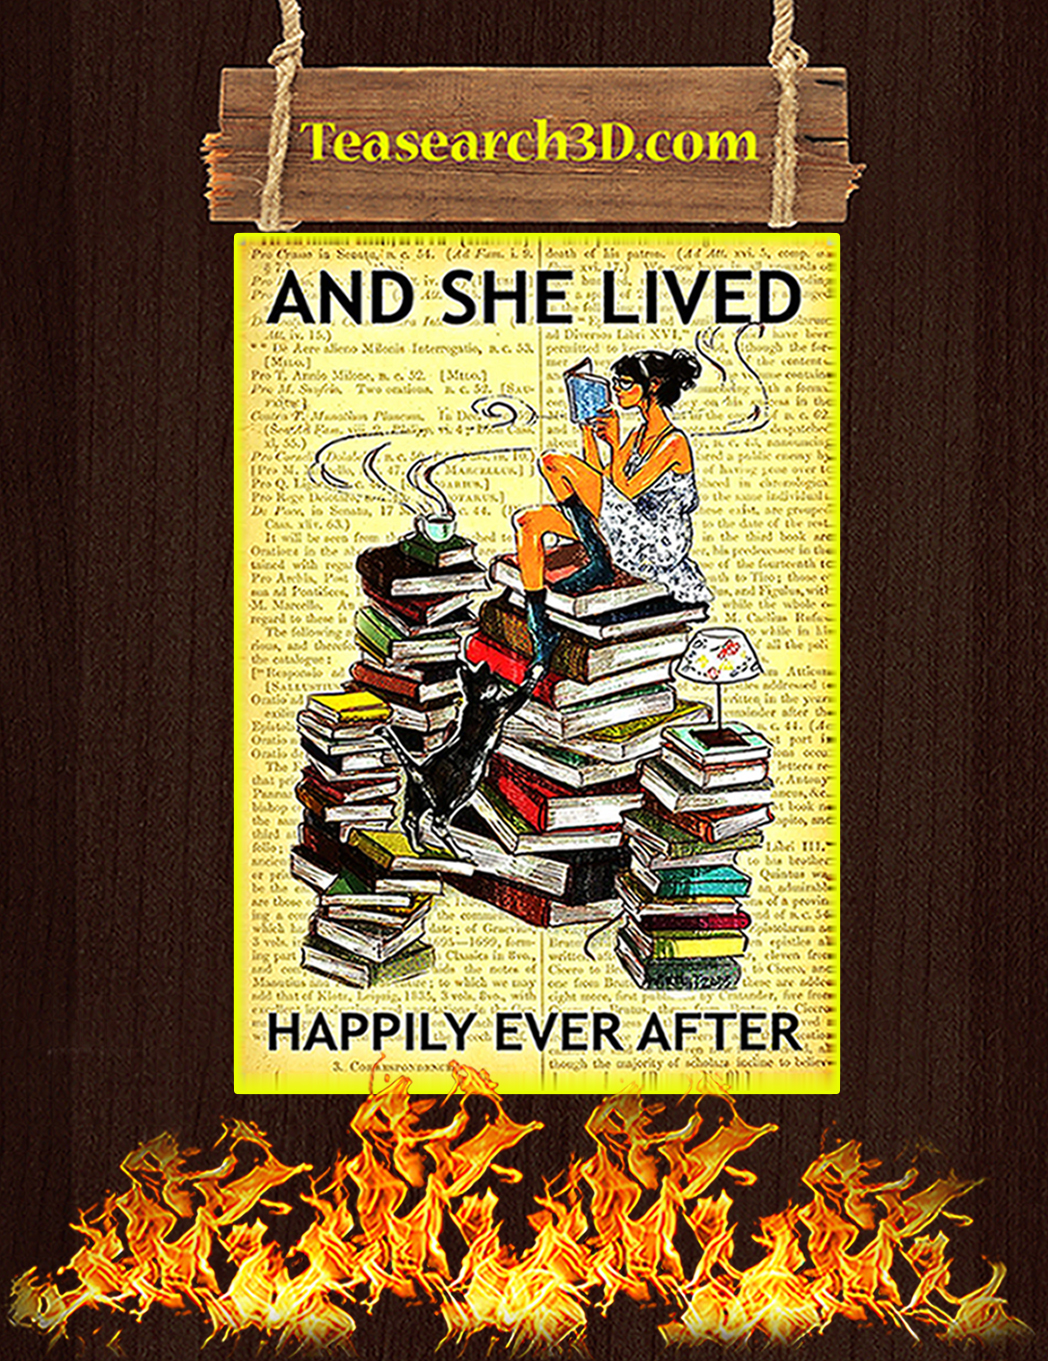 Book And she lived happily ever after poster A1